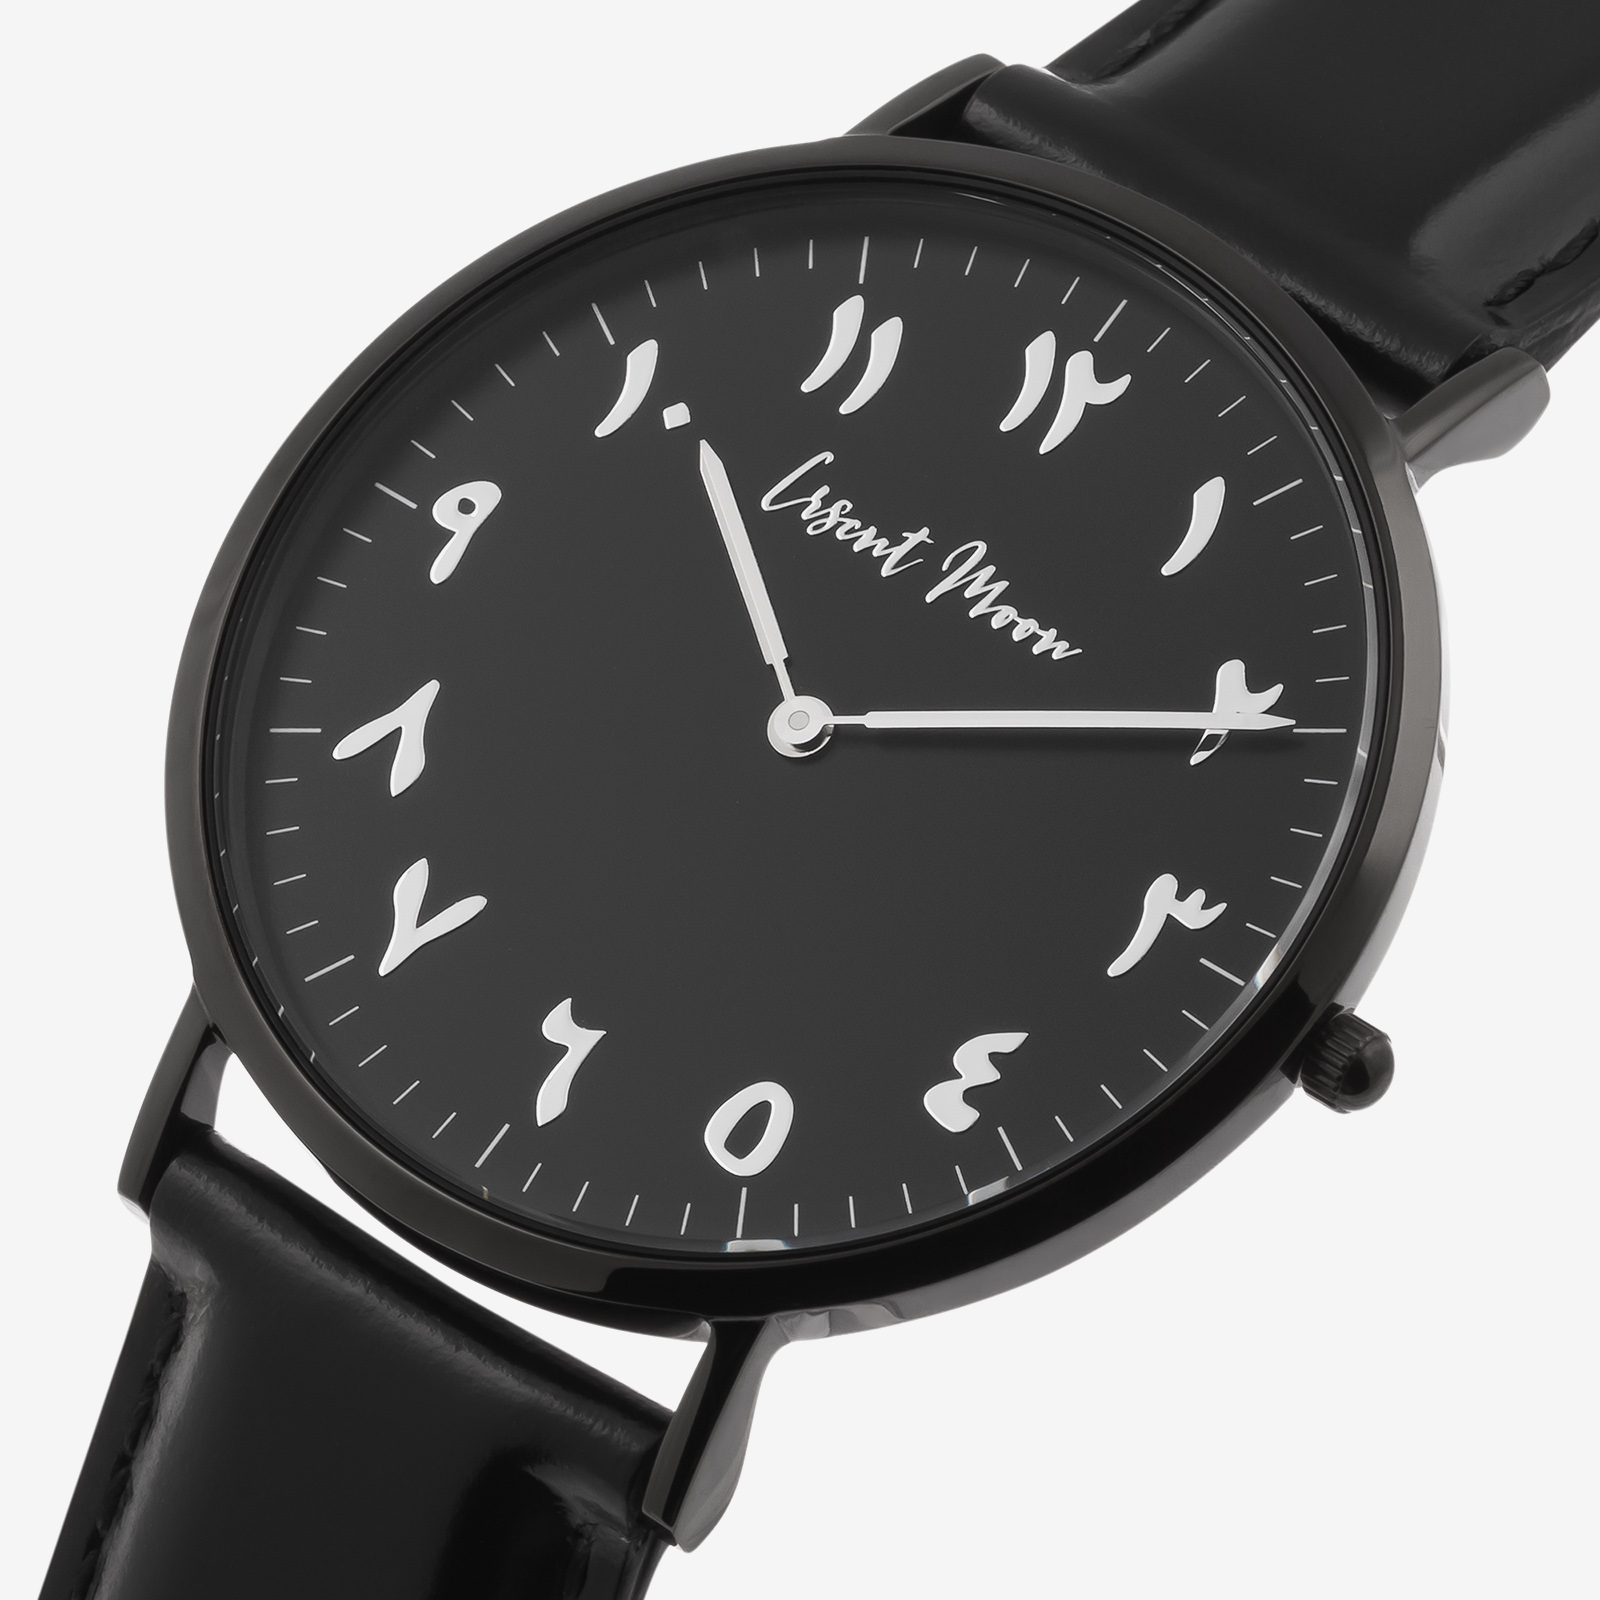 clock product photo, hand product photo, pointer product photo, time product photo, minute hand product photo, hour hand product photo, minute product photo, indicator product photo, hour product photo